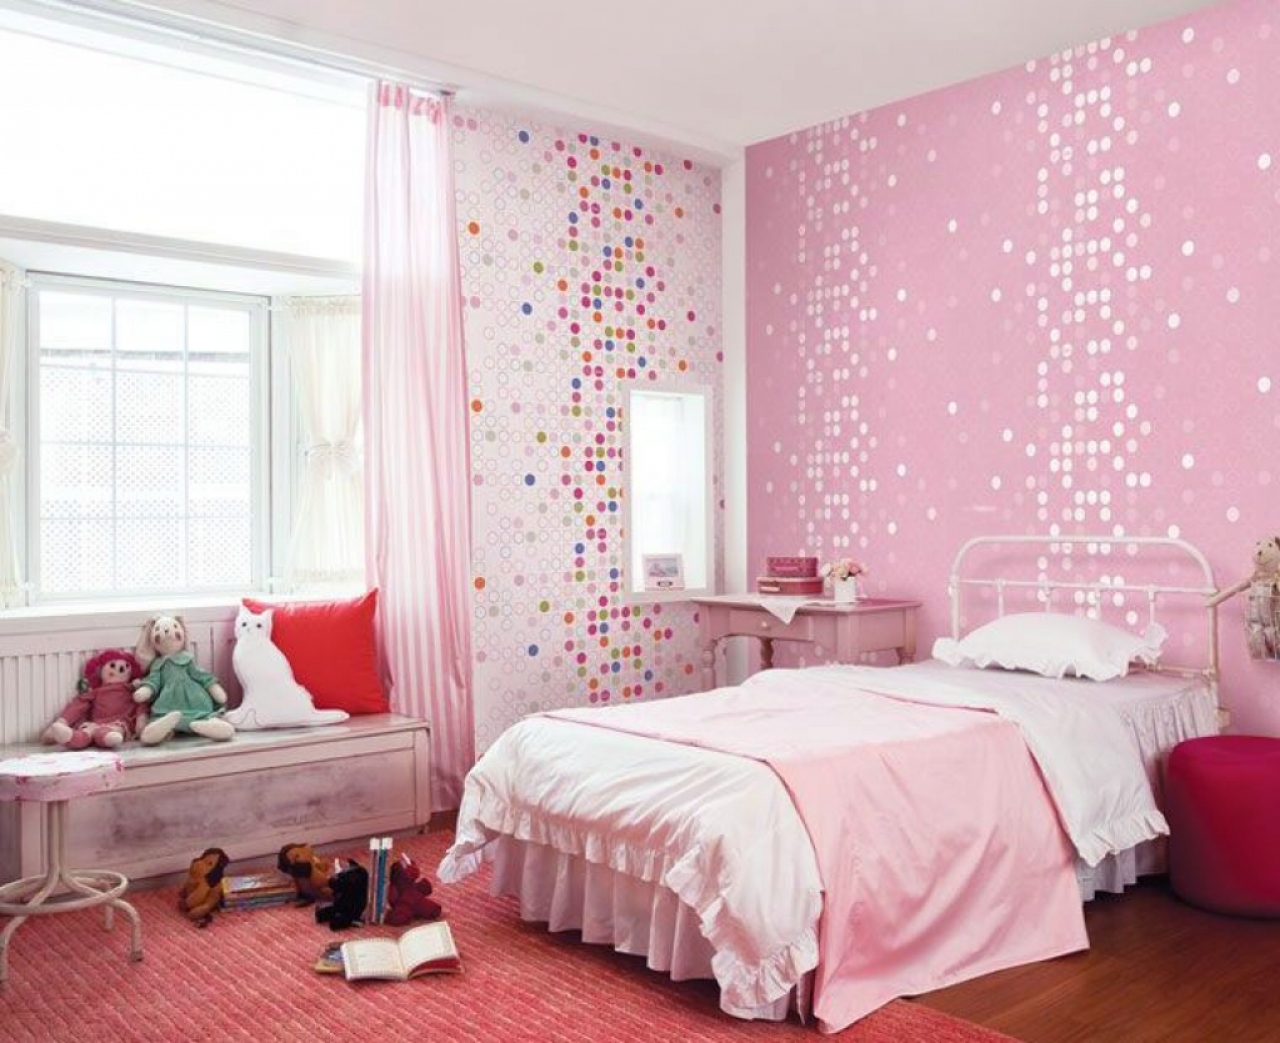 Kids Room Cute Pink Dotty Wallpaper S Bedroom Home Designjpg 1280x1043